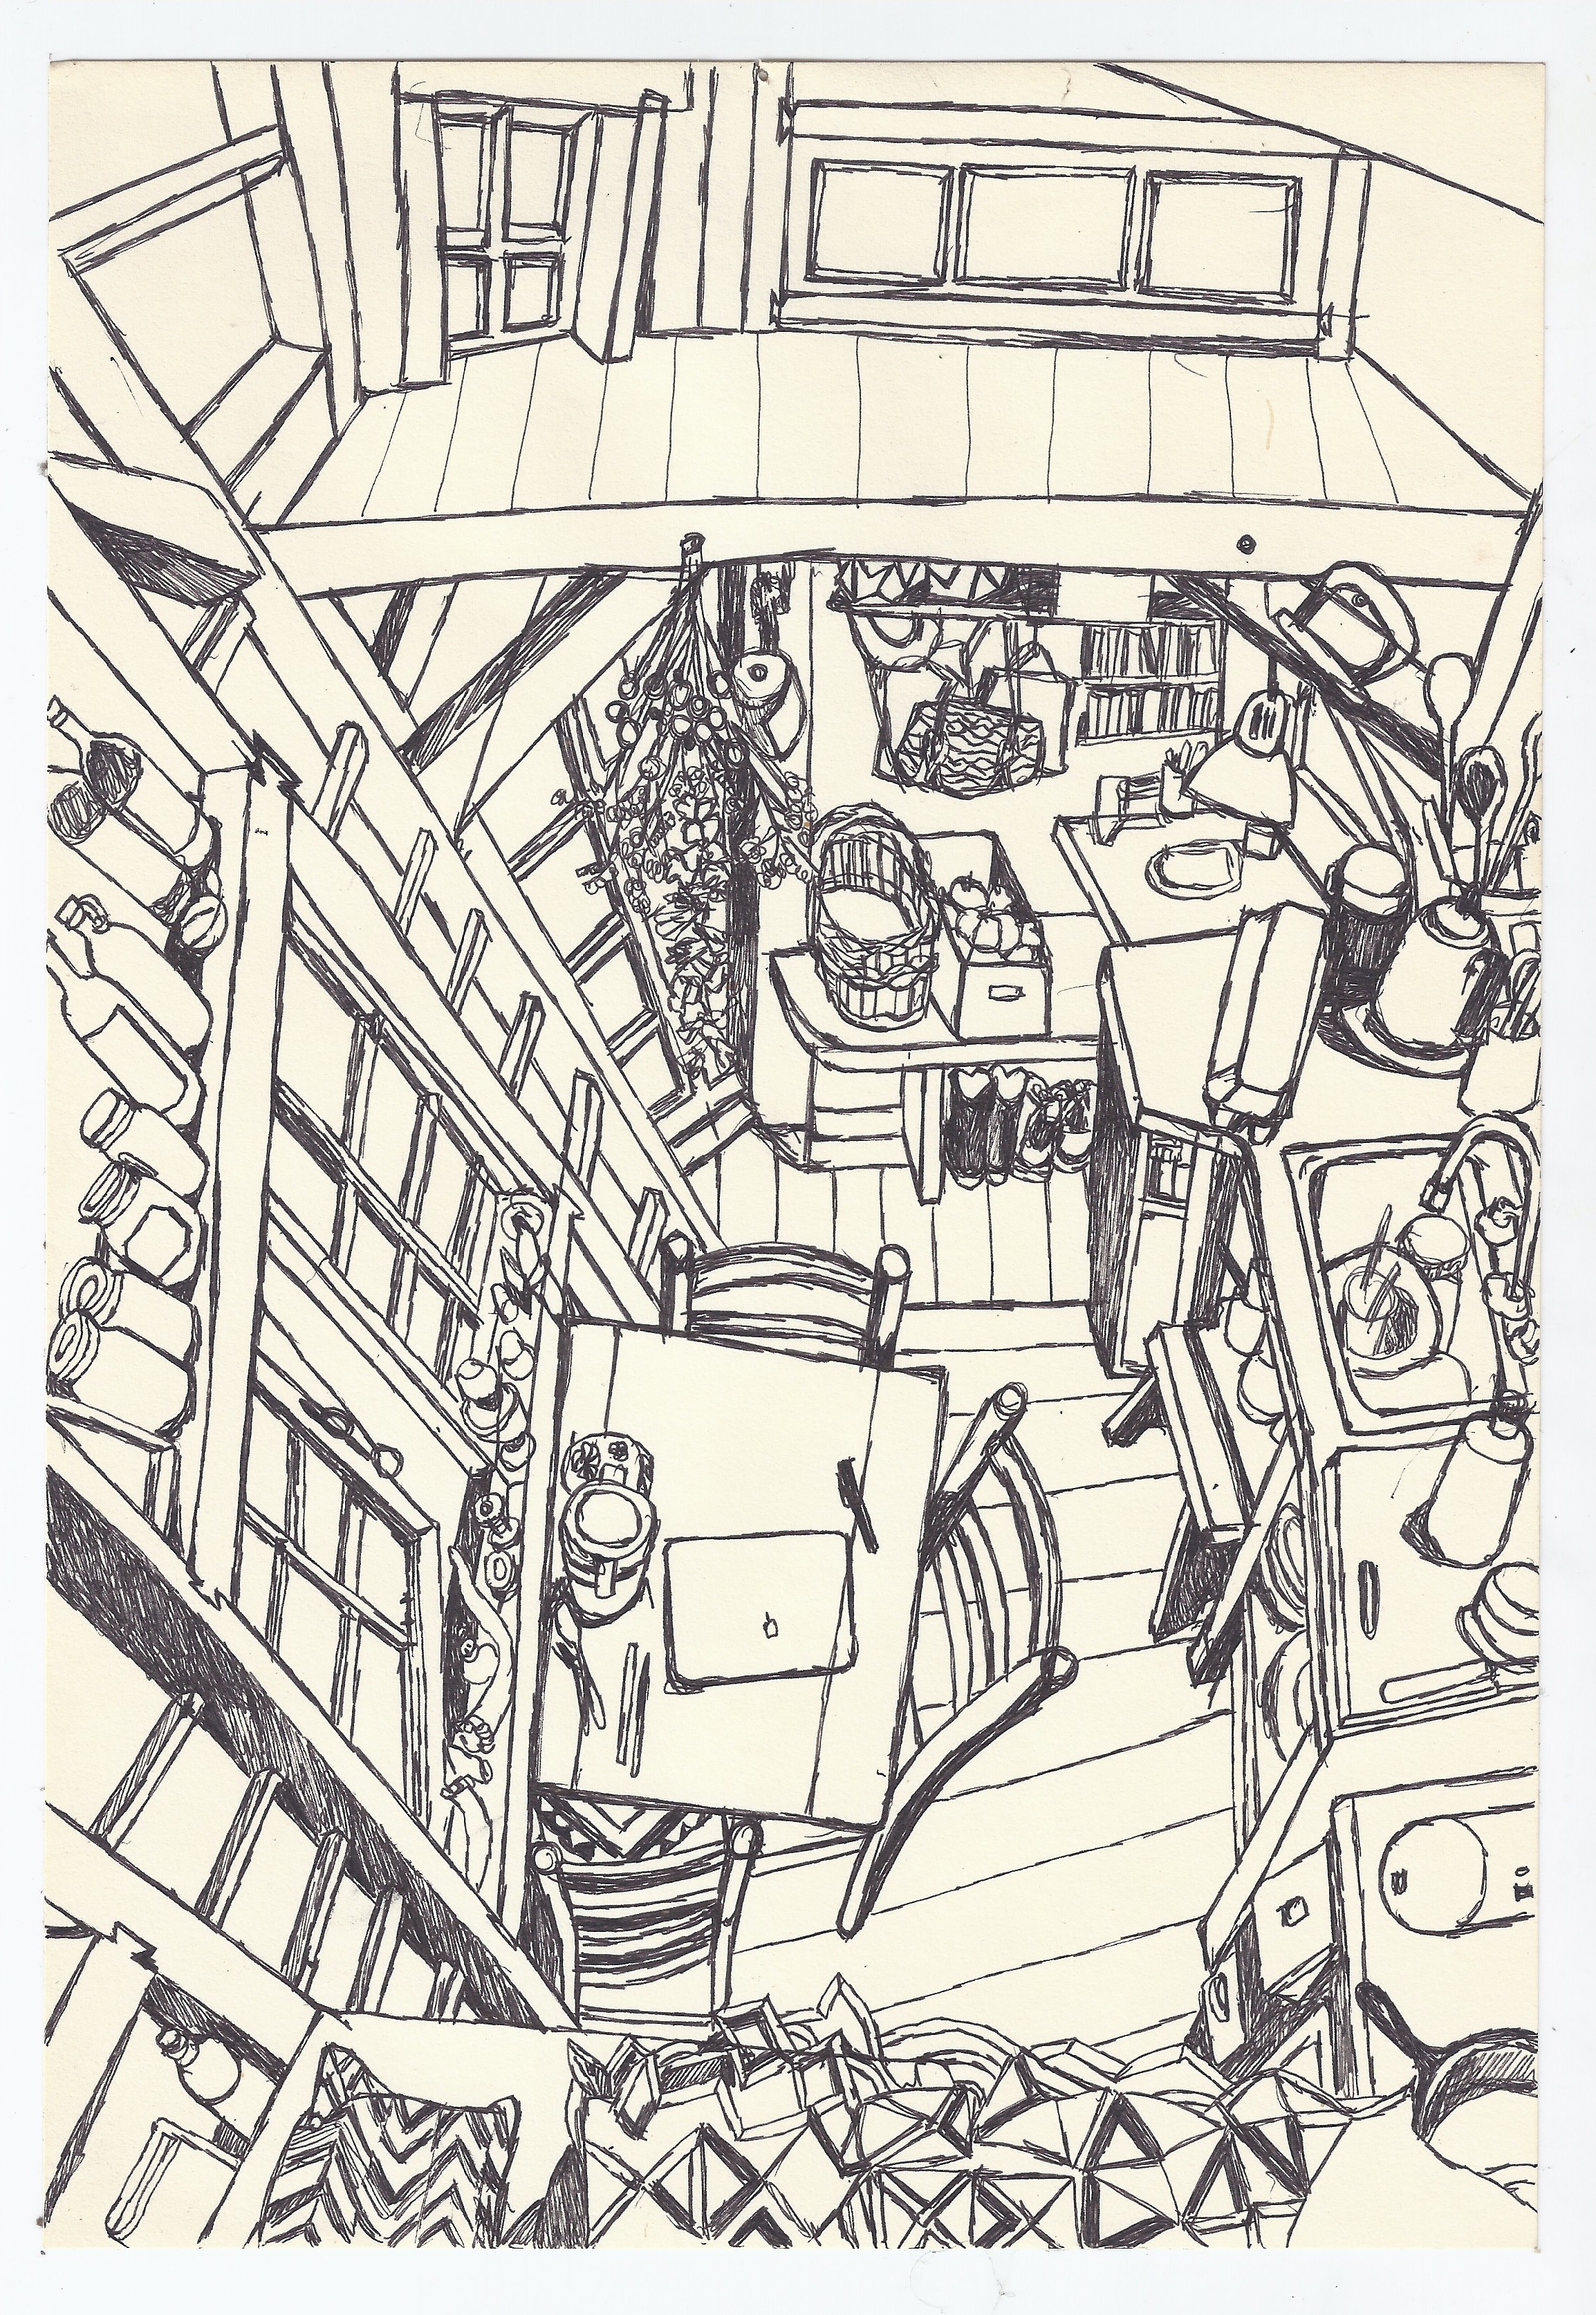 tiny house interior drawing.jpeg